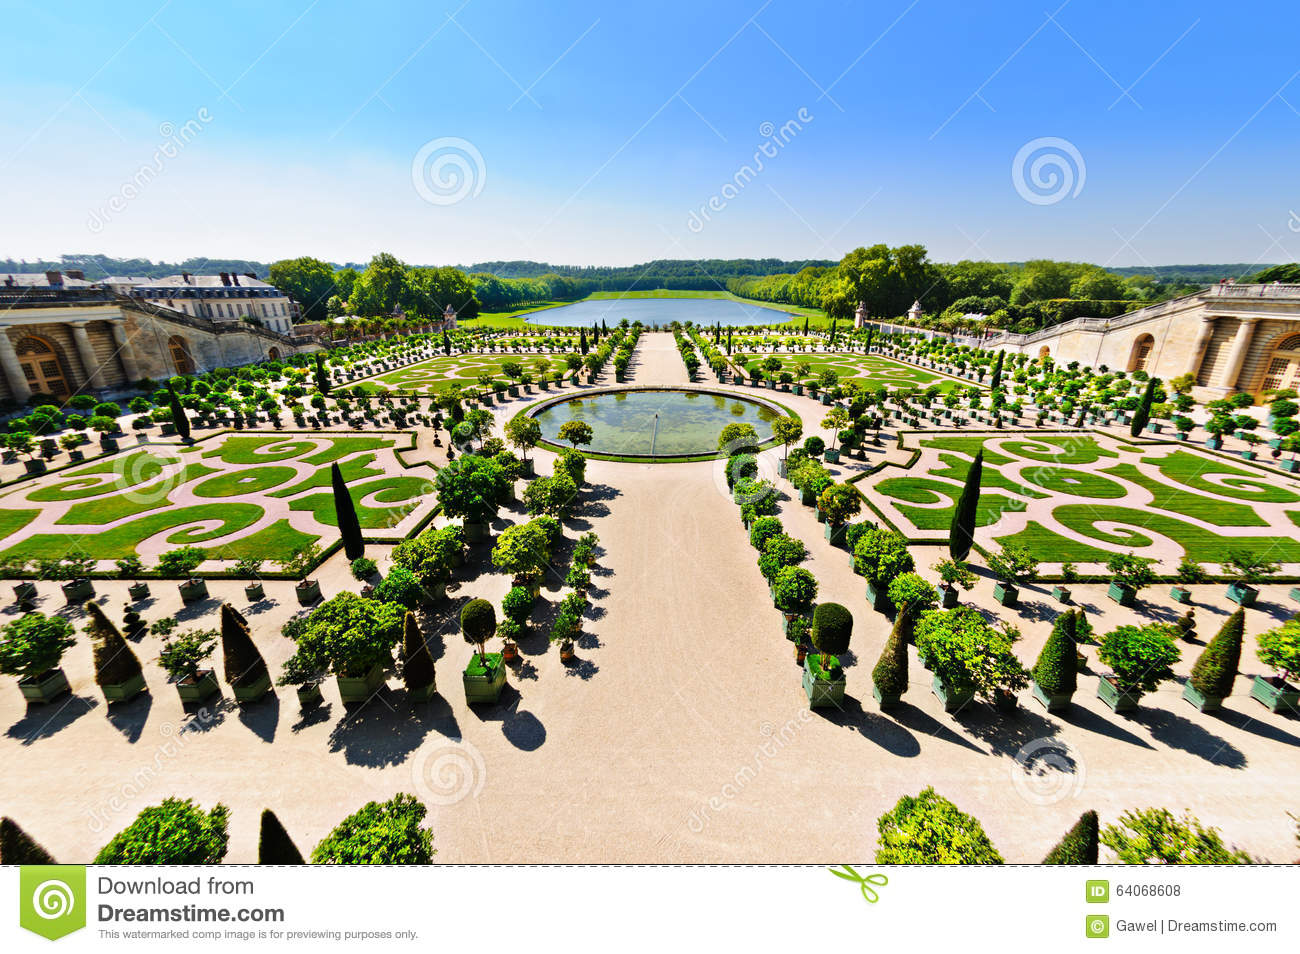 Le jardin de versailles paris france photo stock image for Piscine versailles